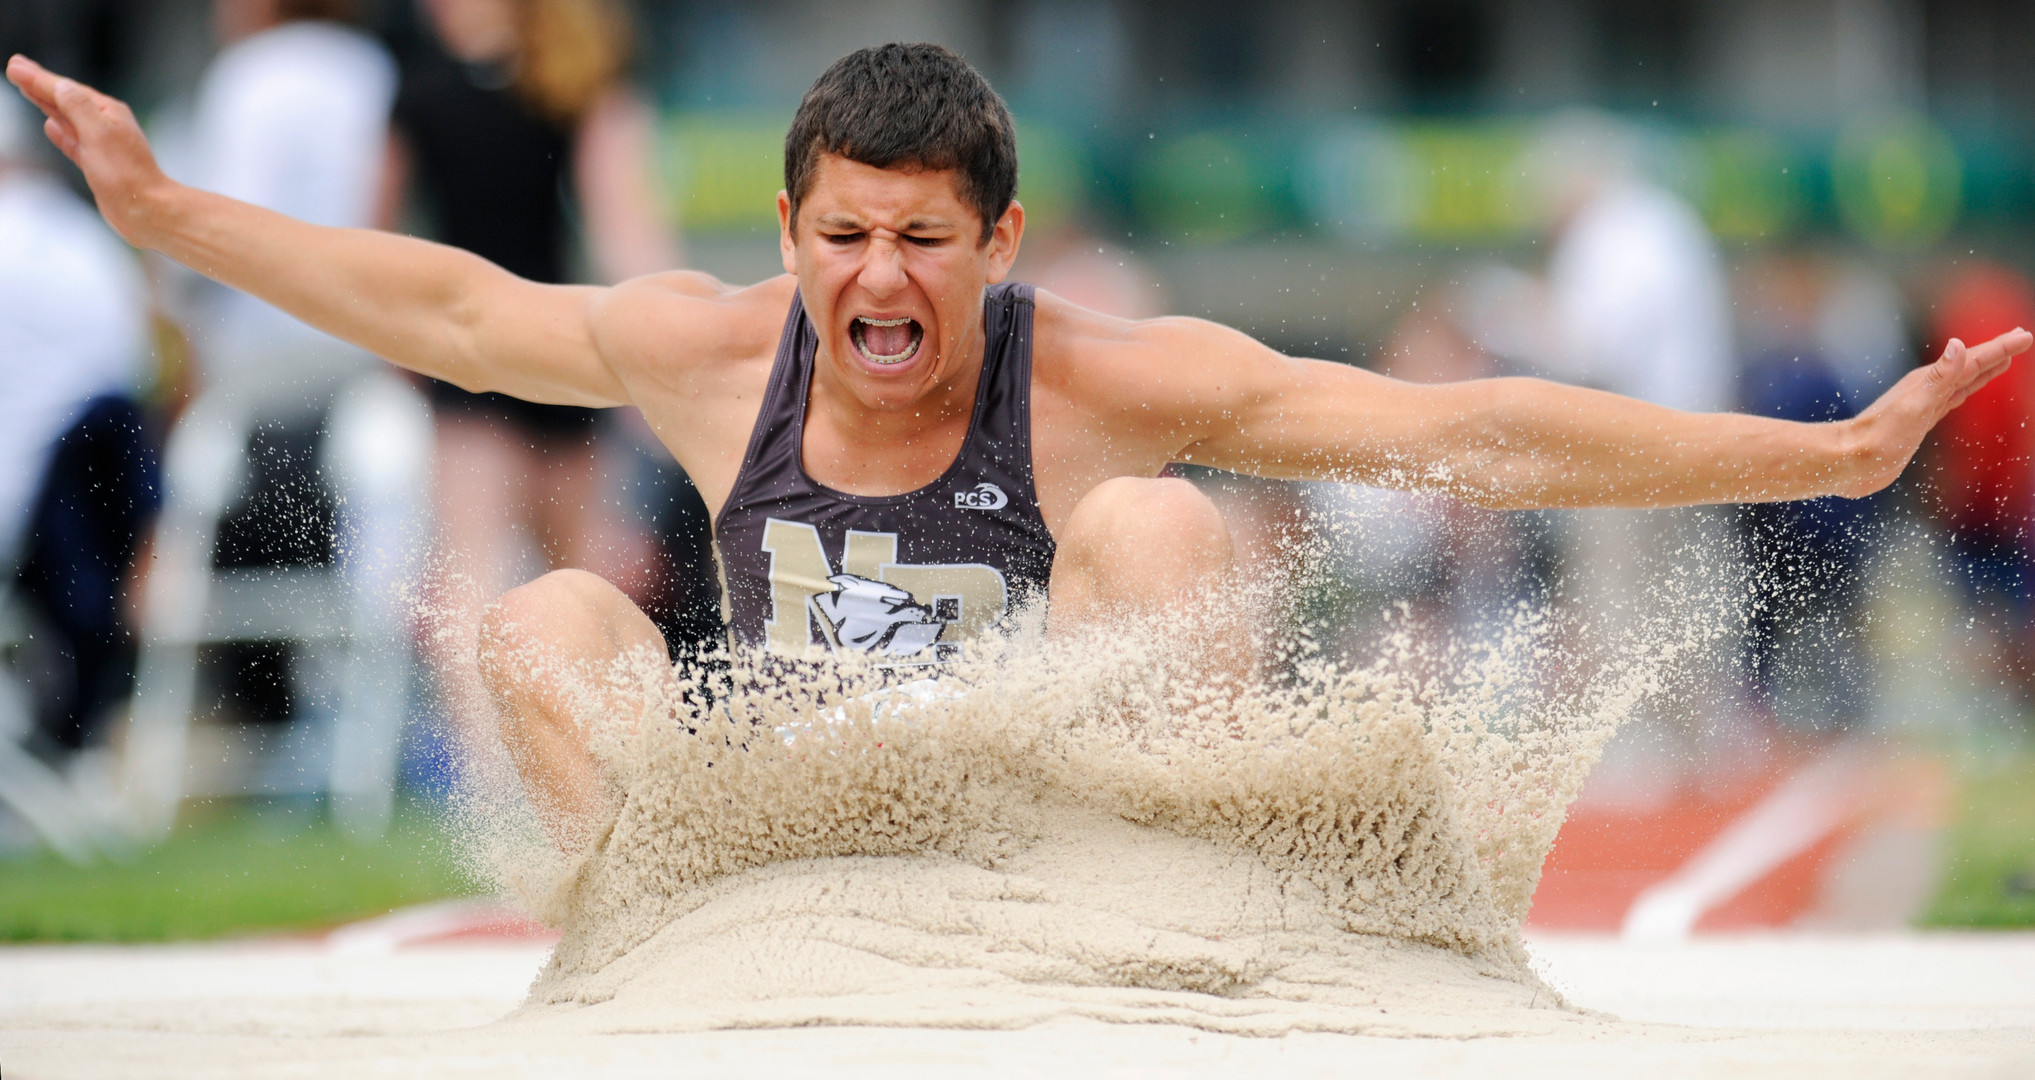 North Bend High School's Drew Matthews sends sand flying as he lands in the long jump pit Friday during the state track meet at Hayward Field in Eugene, Oregon. (The World newspaper)